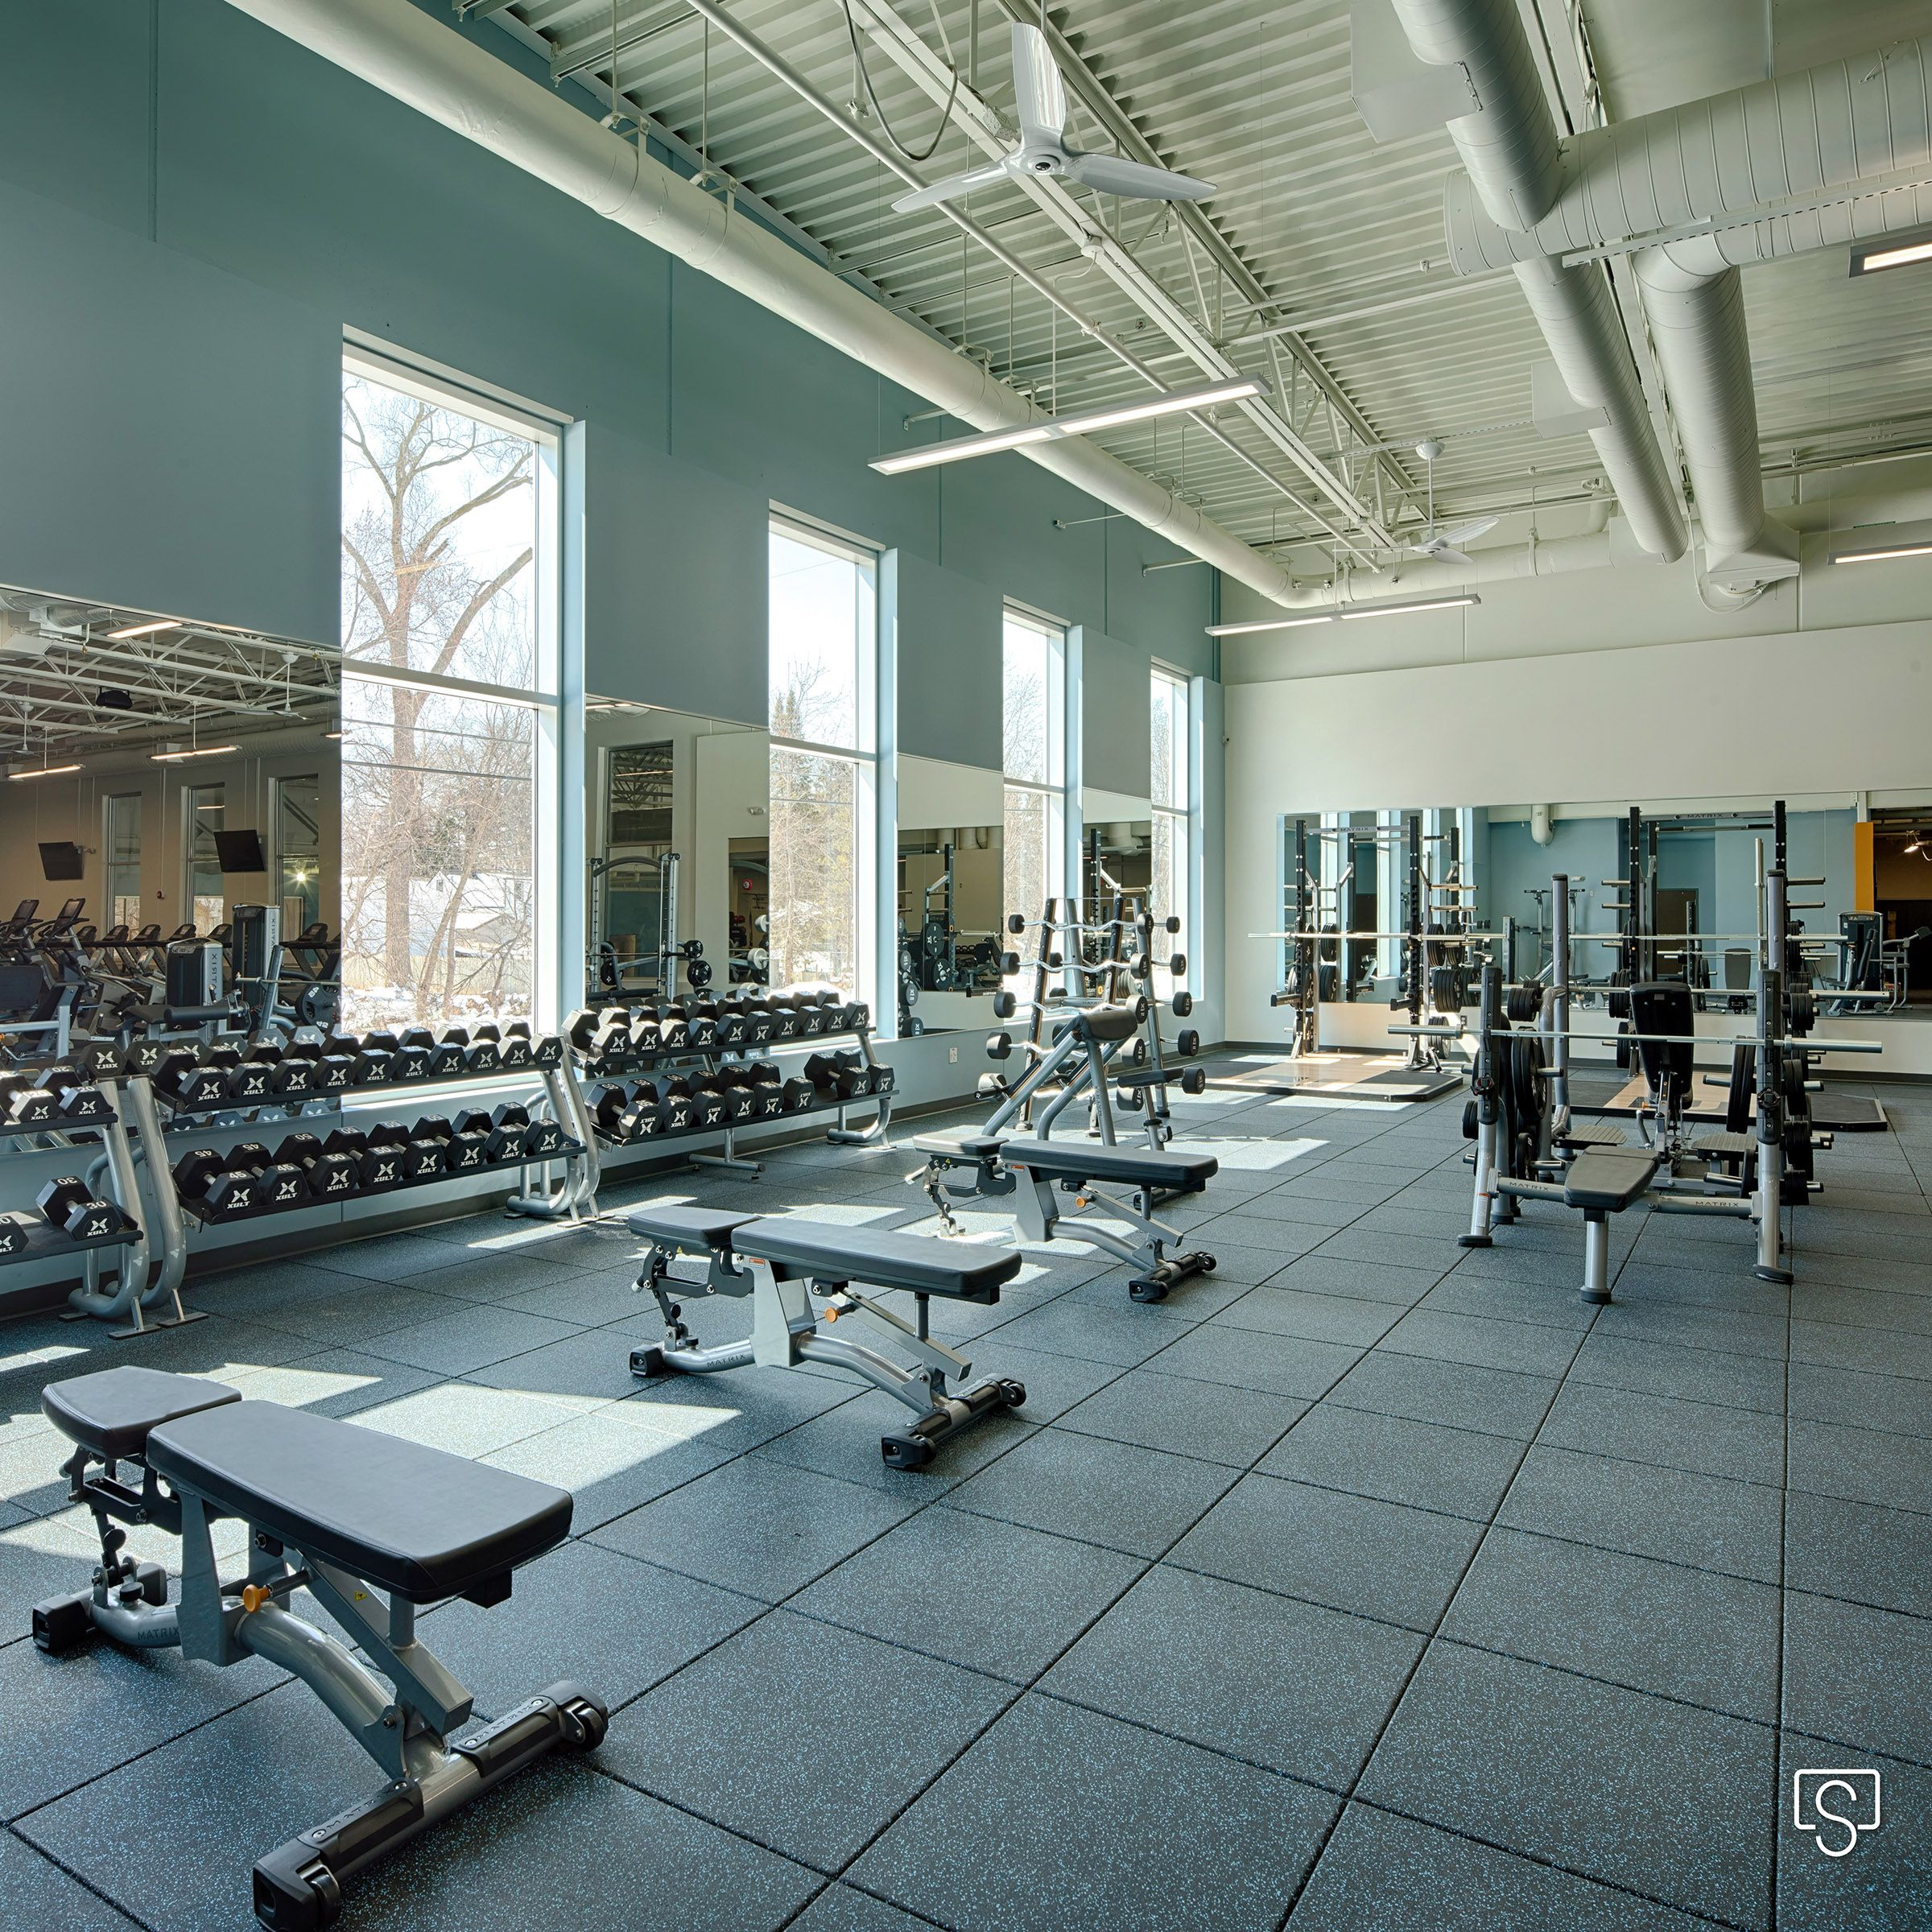 Fitnesscenter Architecture Photography Of The St Paul Jcc Architecture Architecture Photography Business Portrait